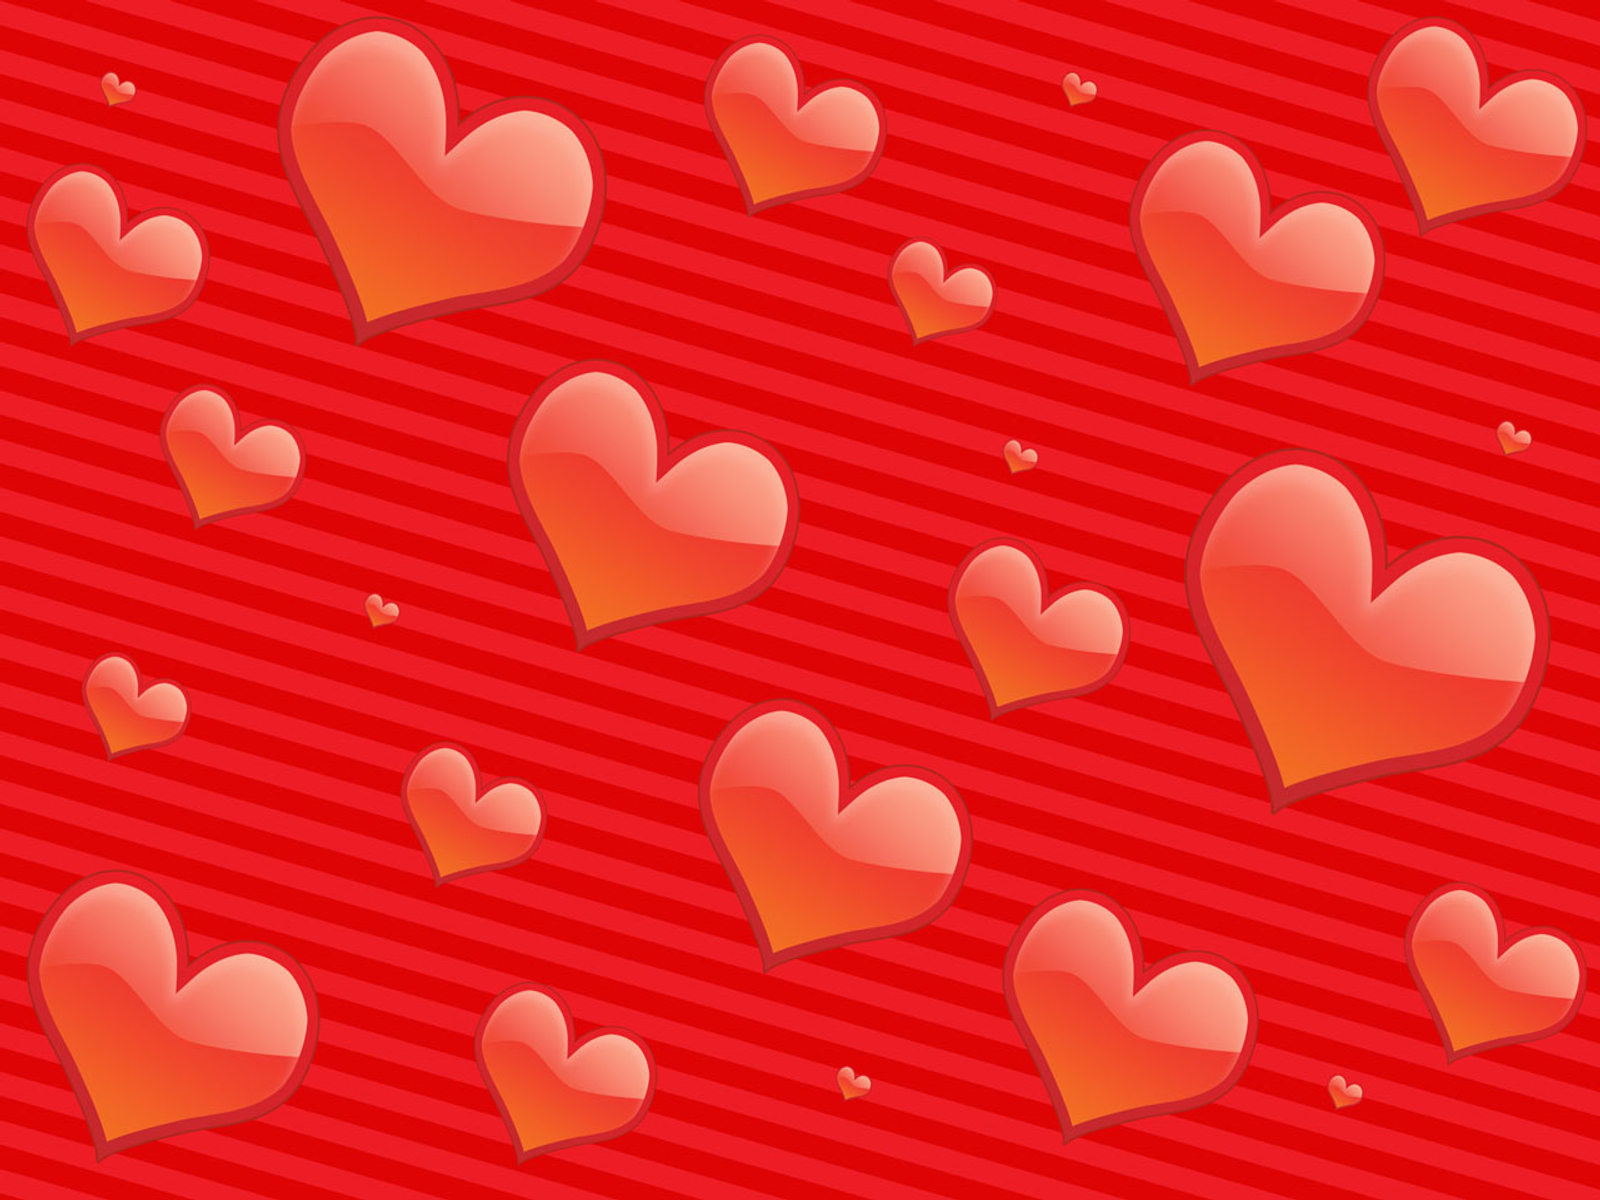 1600x1200 Hearts and stripes desktop wallpapers and stock photos